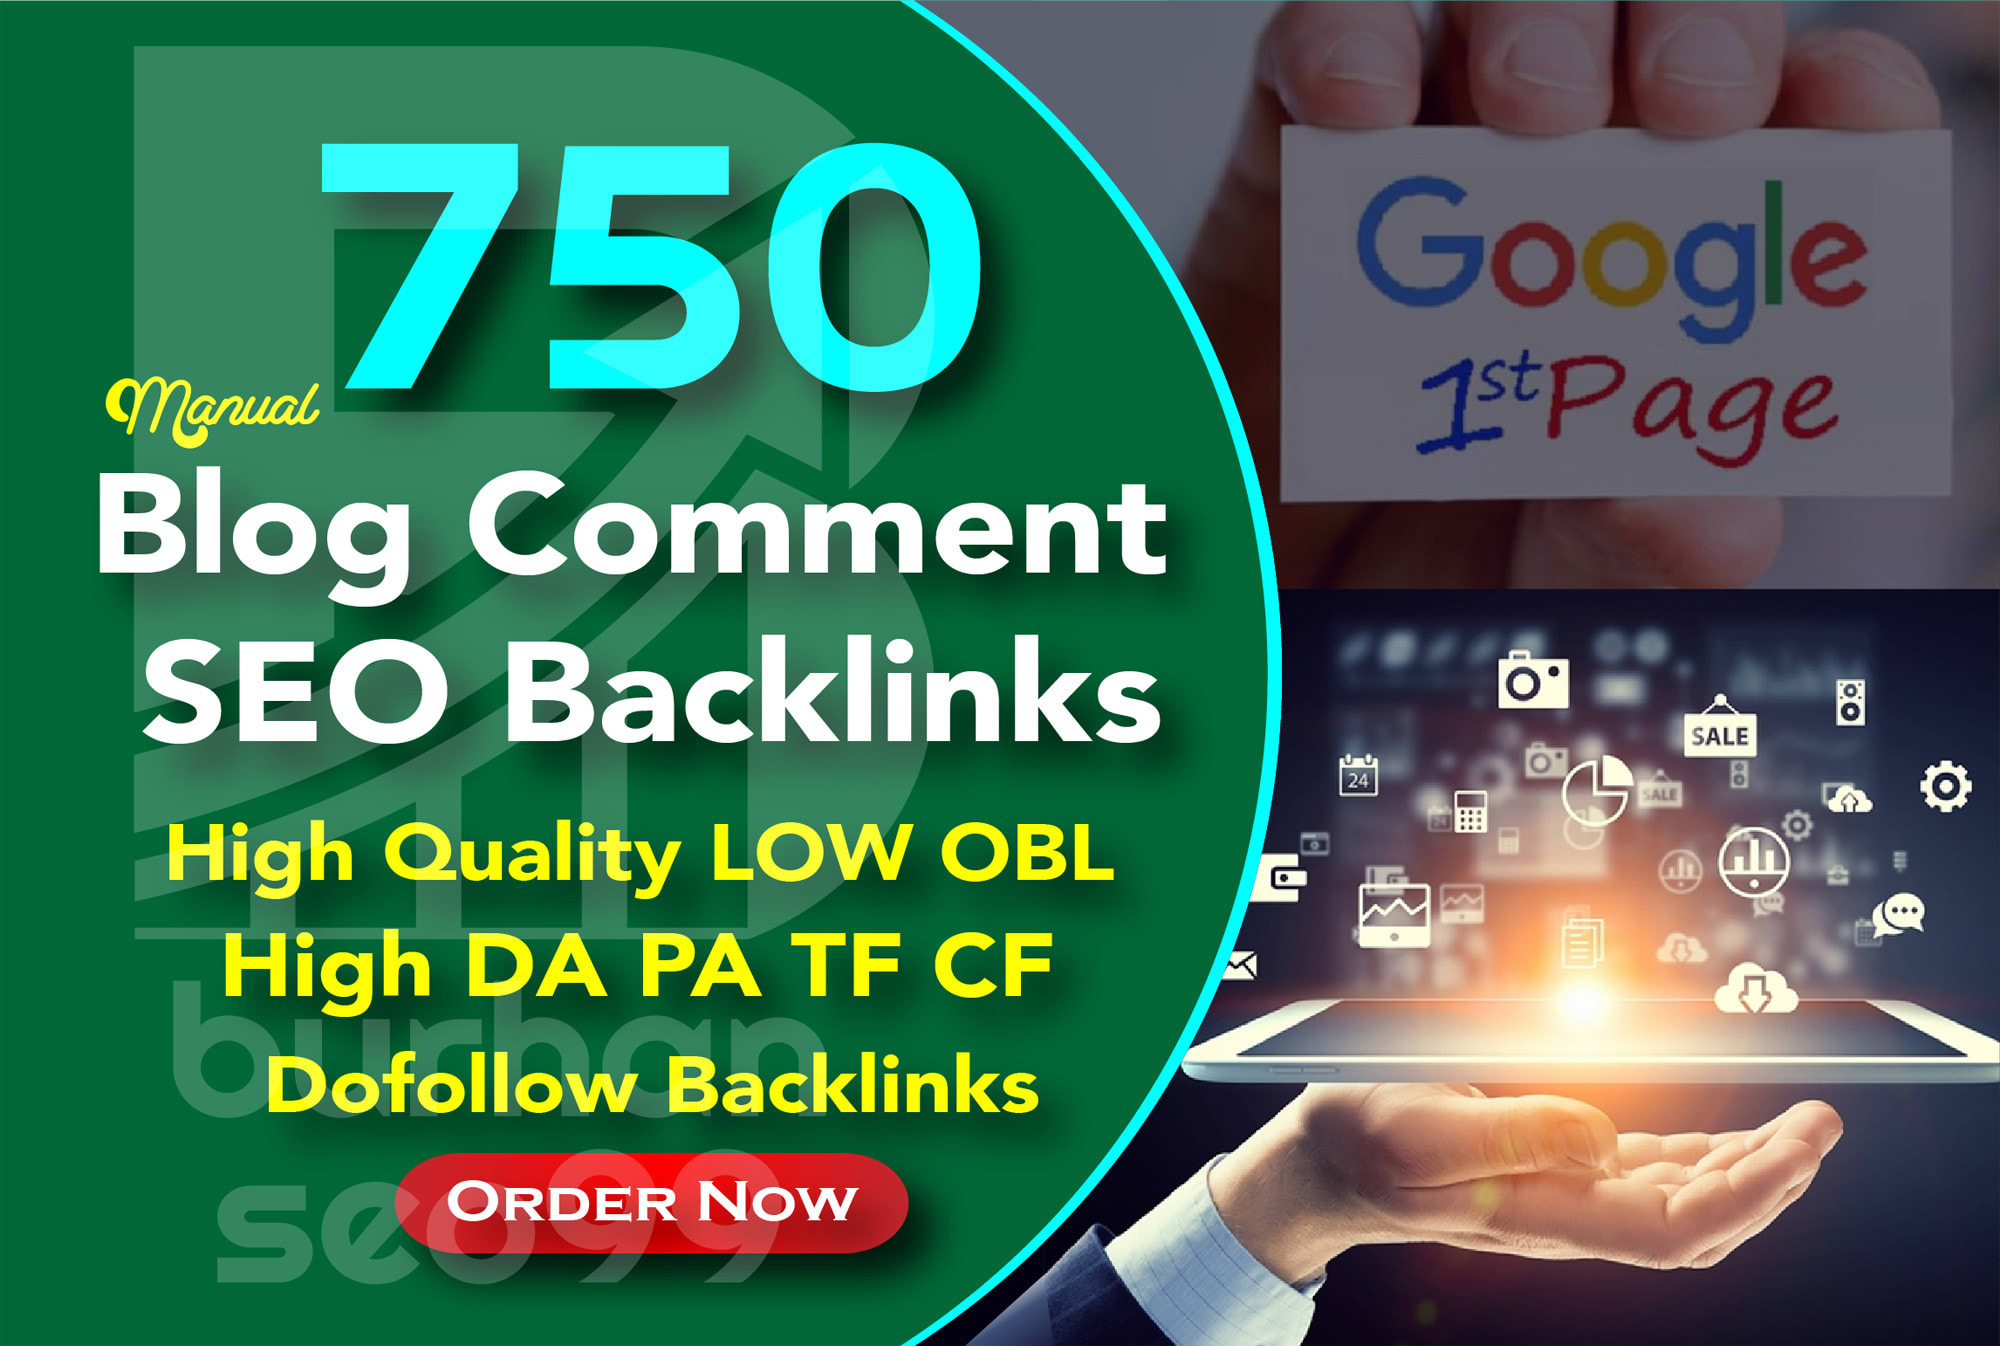 I Will Post 750 Comments on LOW OBL Backlnks Manually